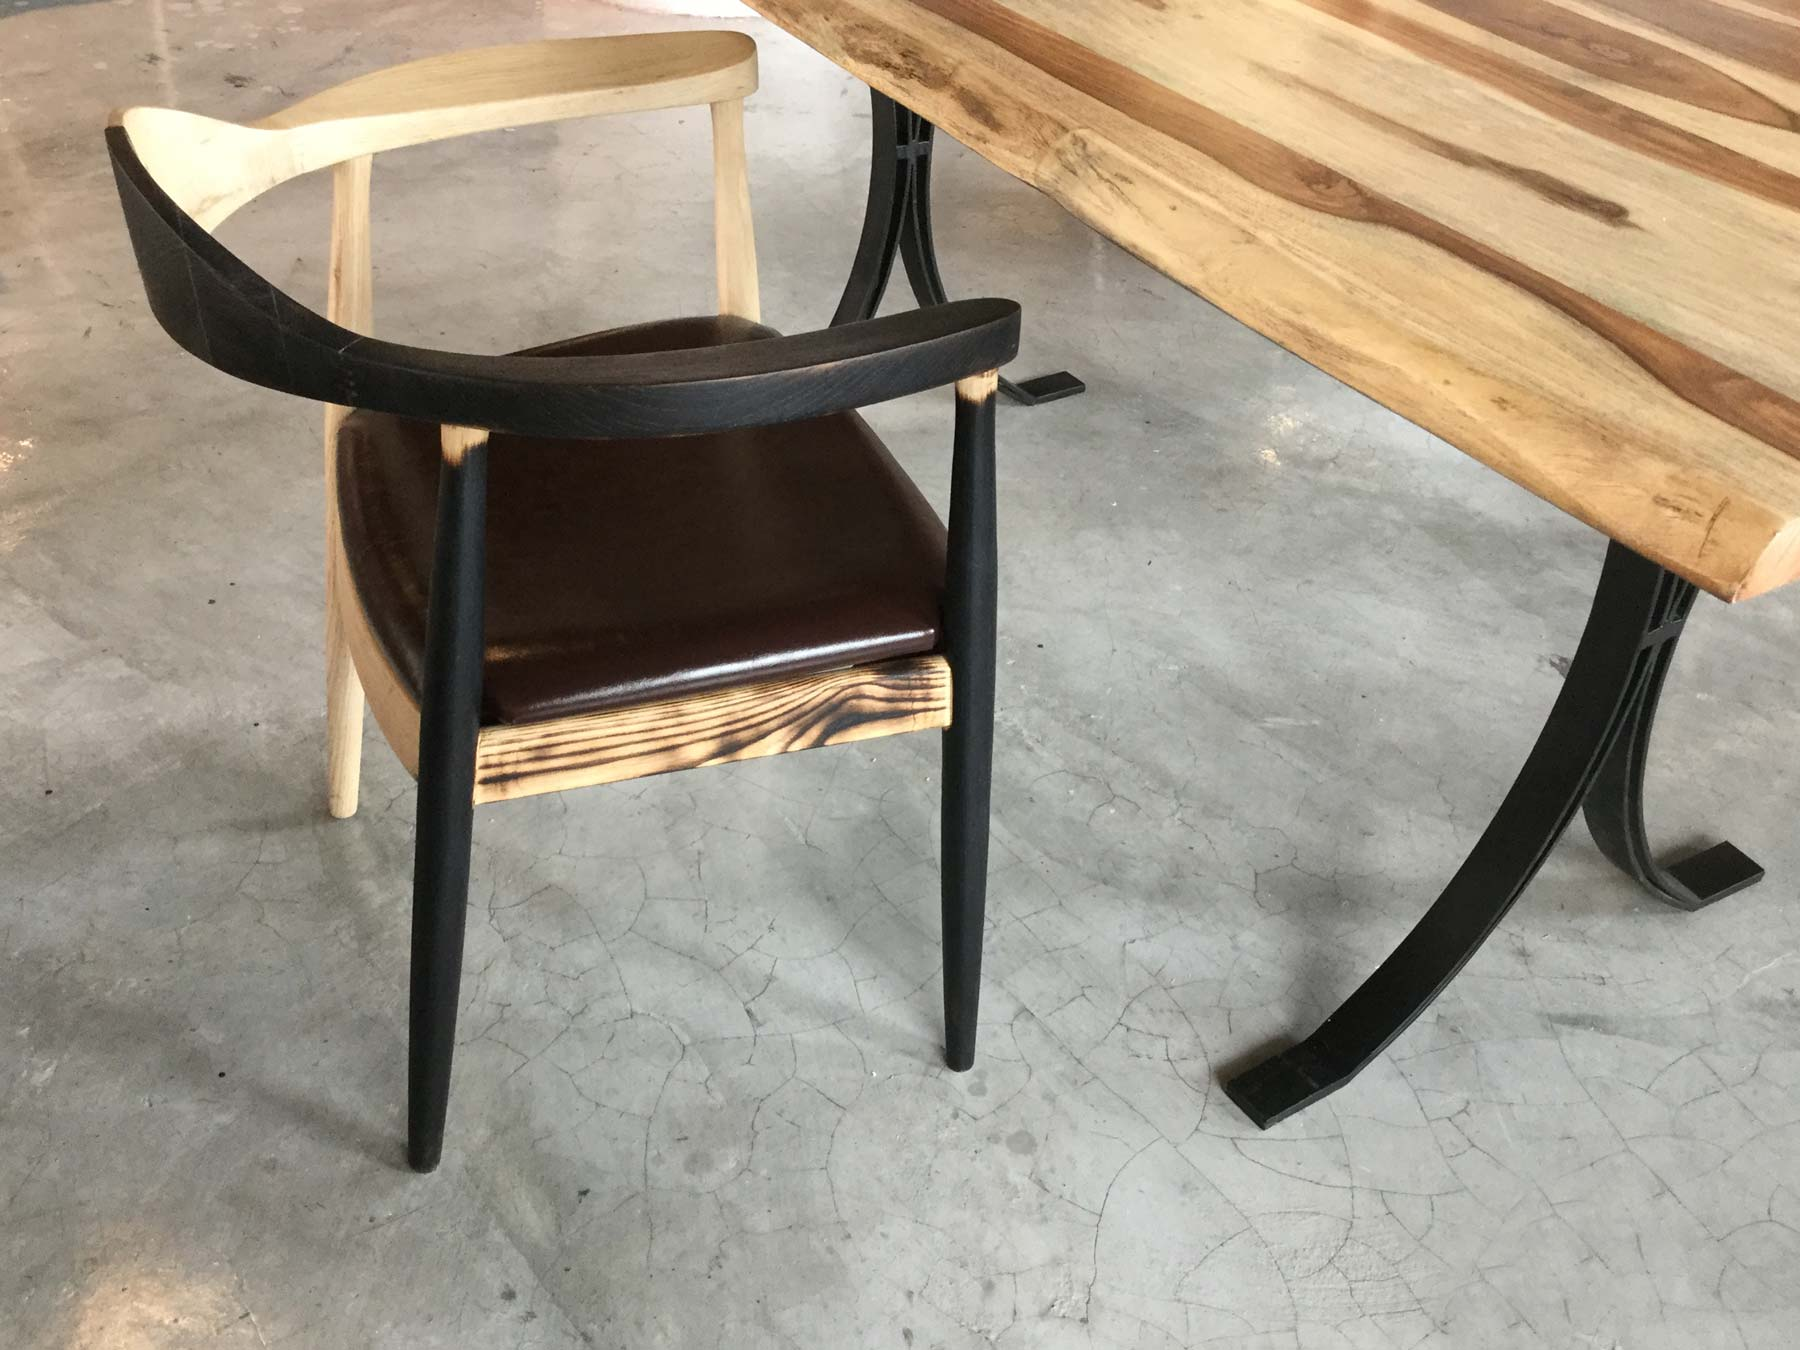 Armchair with dining table